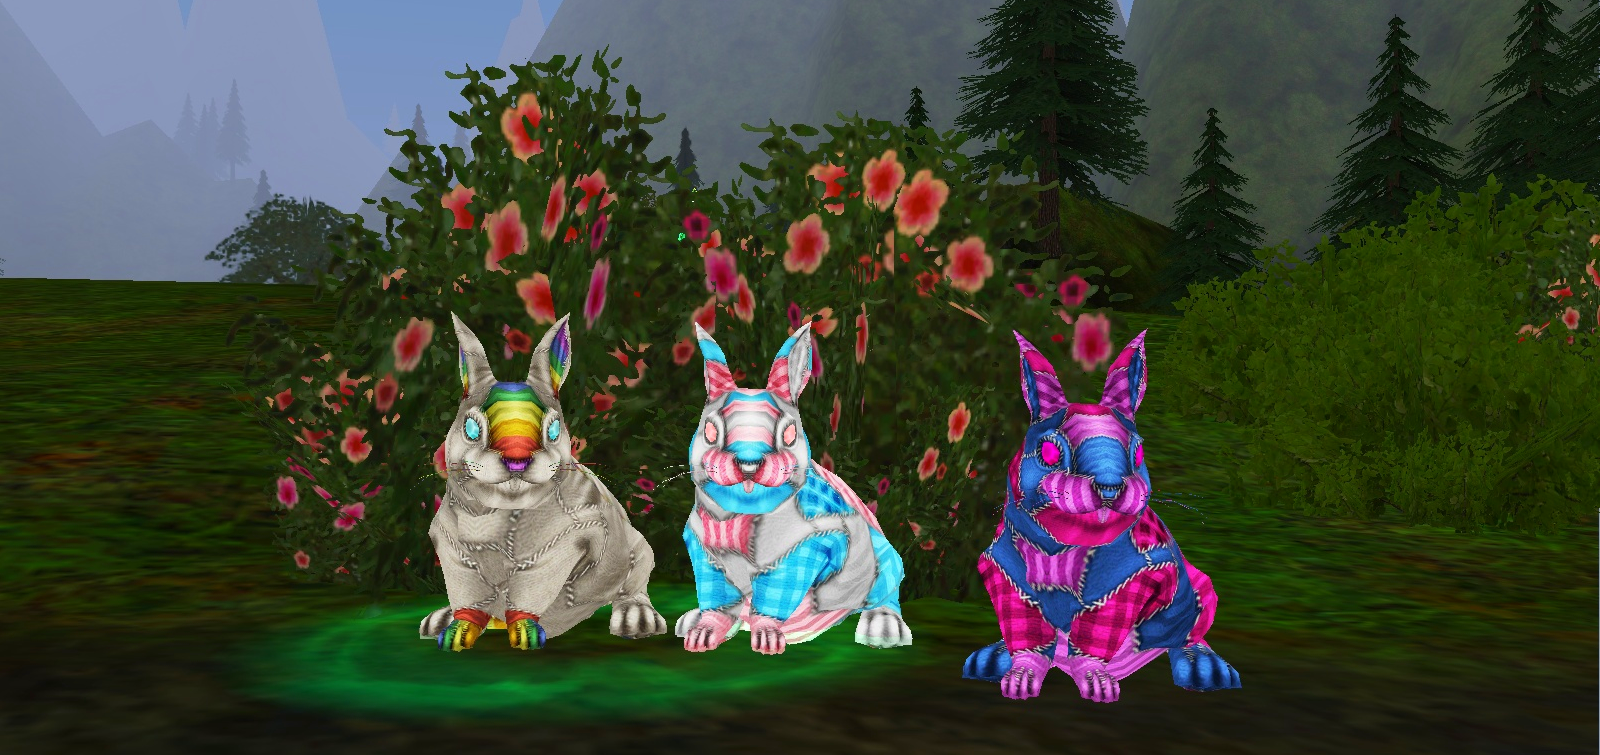 Inventory Full: Now We All Got Crowns  (Ok, Bunnies